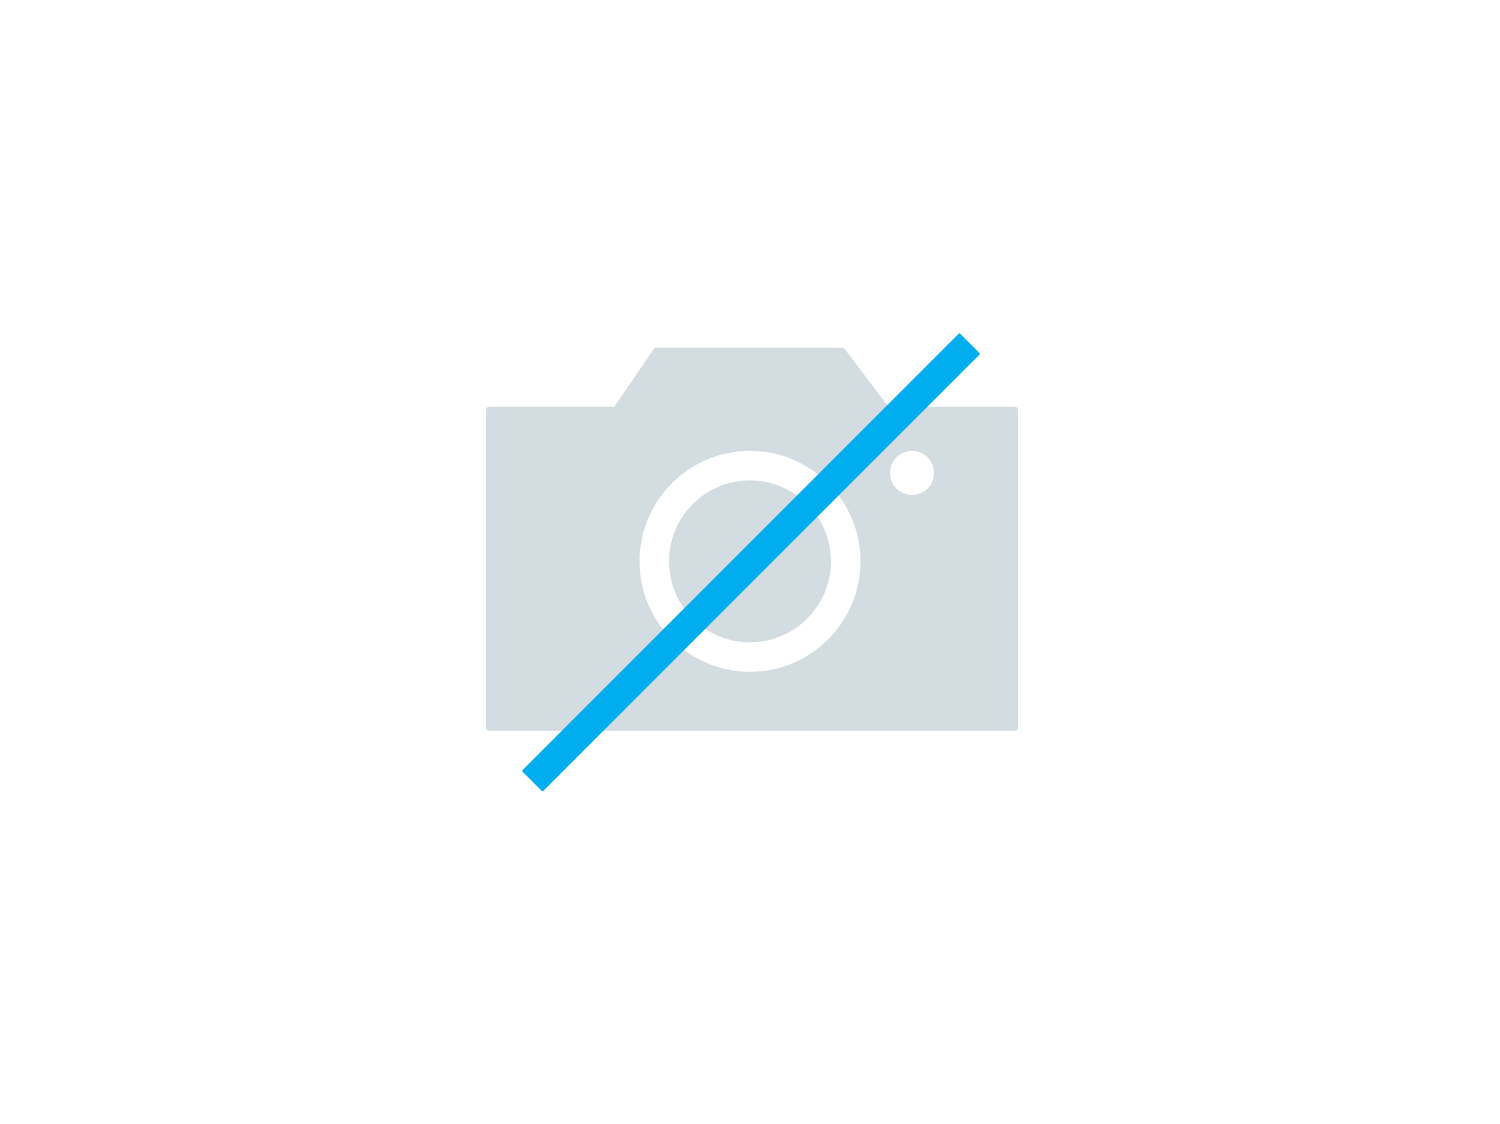 Matras pocketveren 90x200cm-224117-medium